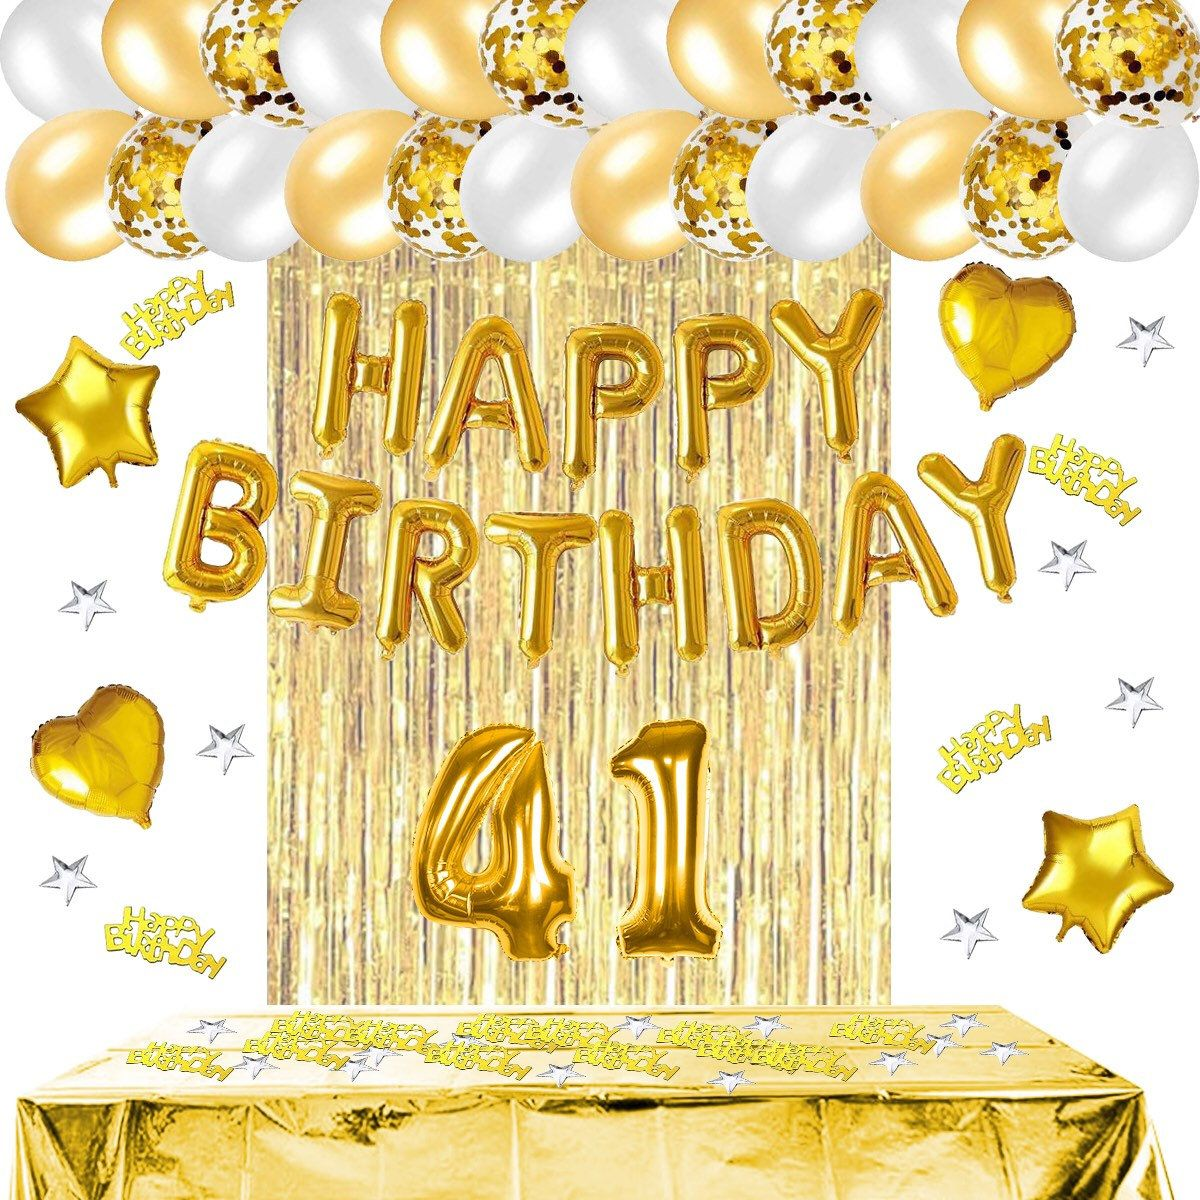 49th Birthday//49th Balloon Party Decorations Supplies Rose Gold Glitter Happy 49th Birthday Cake Topper Hello 49//Cheers To 49 Years